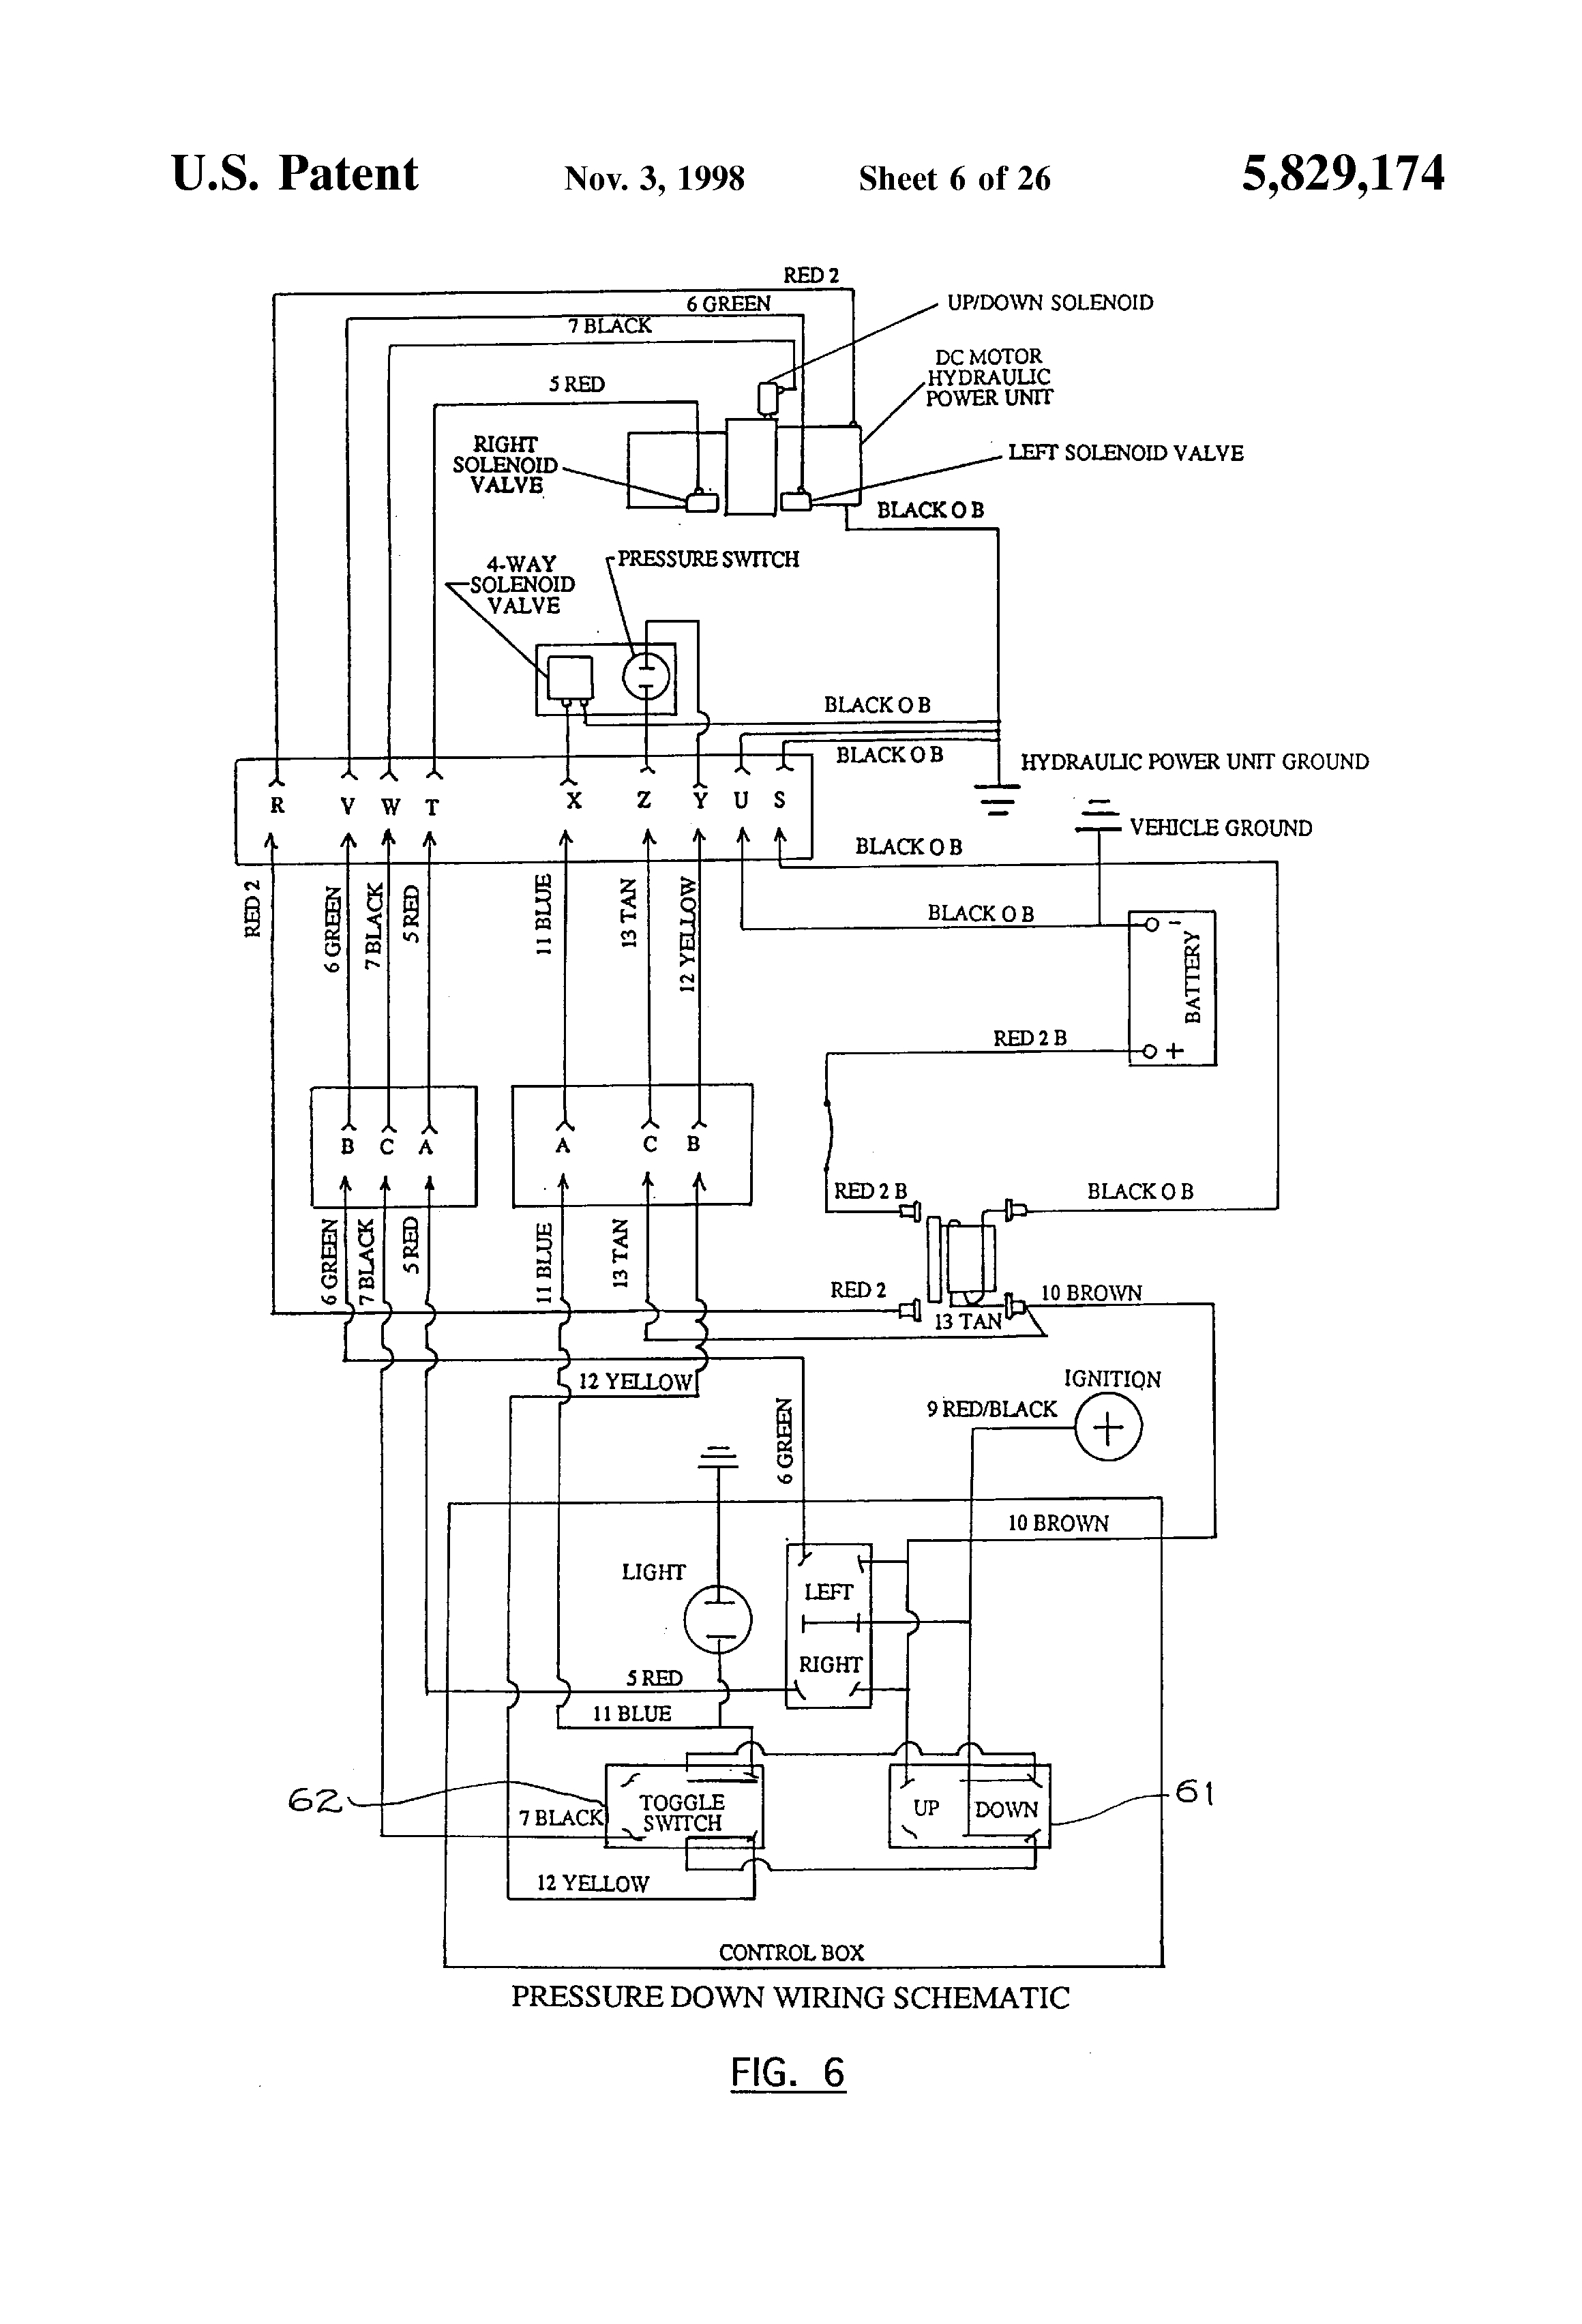 Plow Pump Wiring Diagram Change Your Idea With Design Western Fisher Solenoid Schematic Library Rh 98 Ethnic Studies Org Haldex Snow